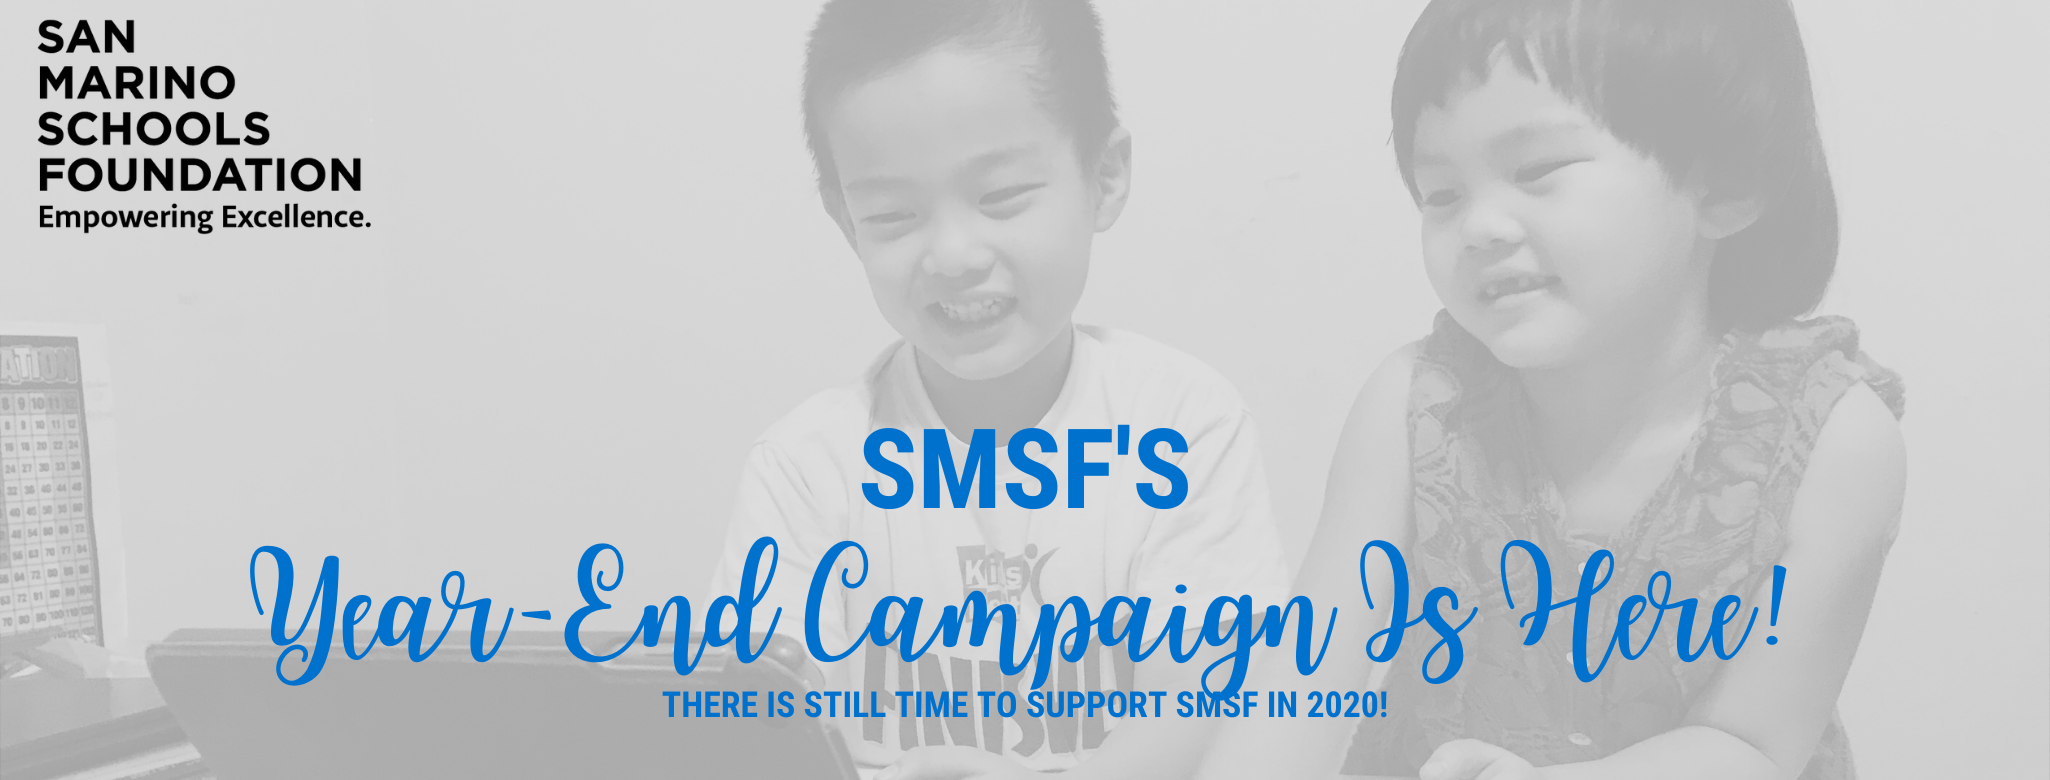 Our Year-End Campaign Is Here!